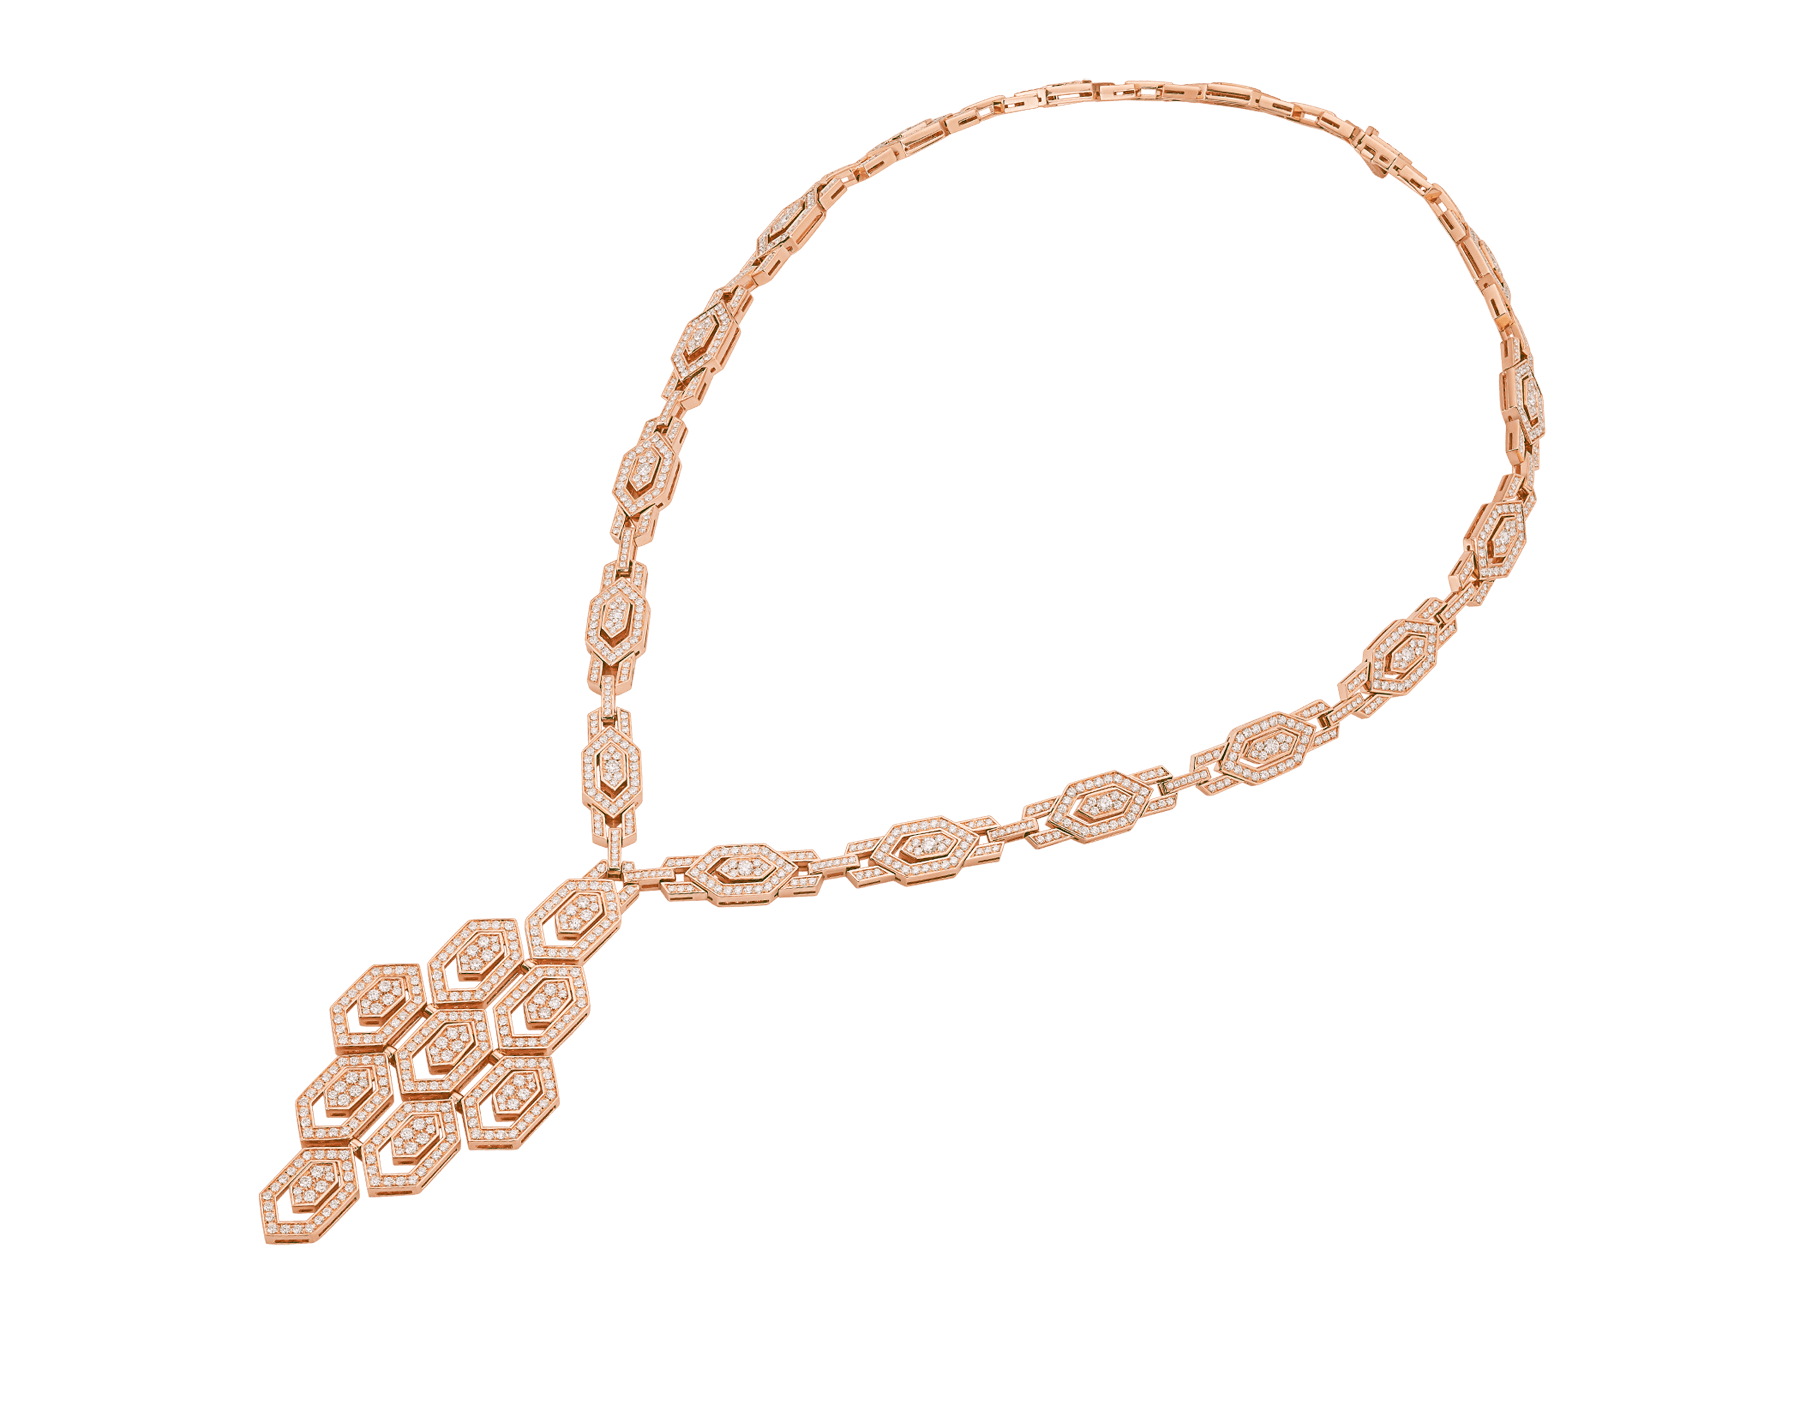 Serpenti 18 kt rose gold necklace set with pavé diamonds both on the chain and pendant. 356194 image 2